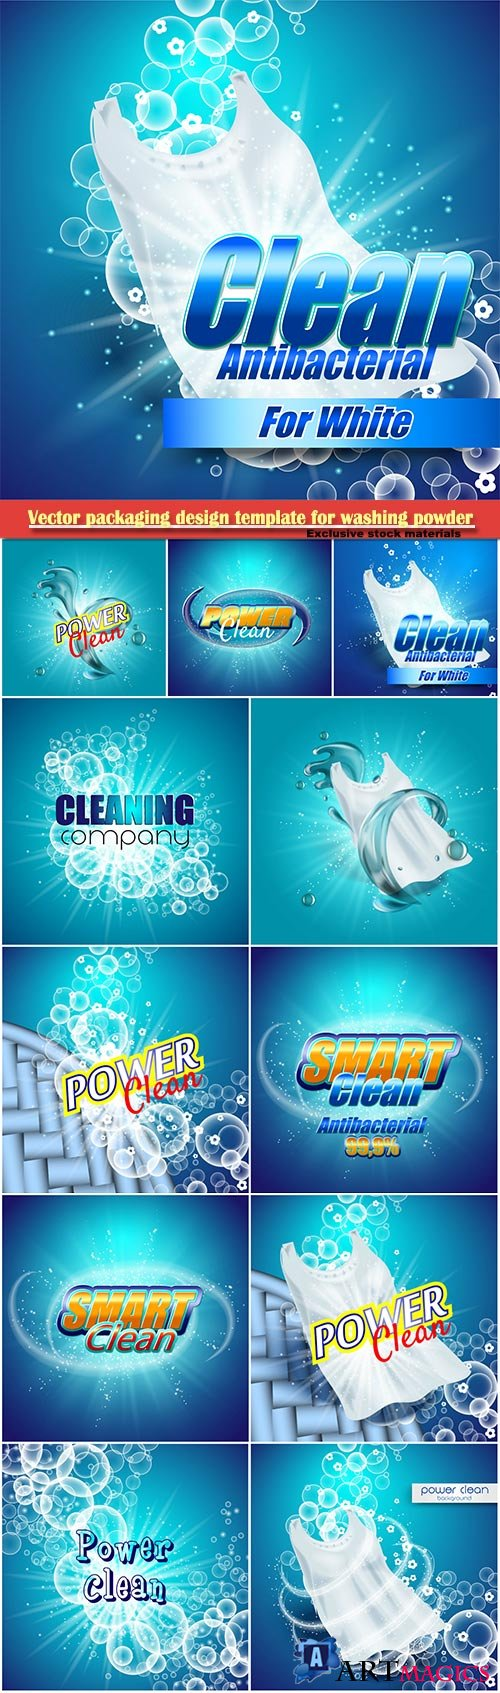 Vector packaging design template for washing powder, super clean, soap bubbles